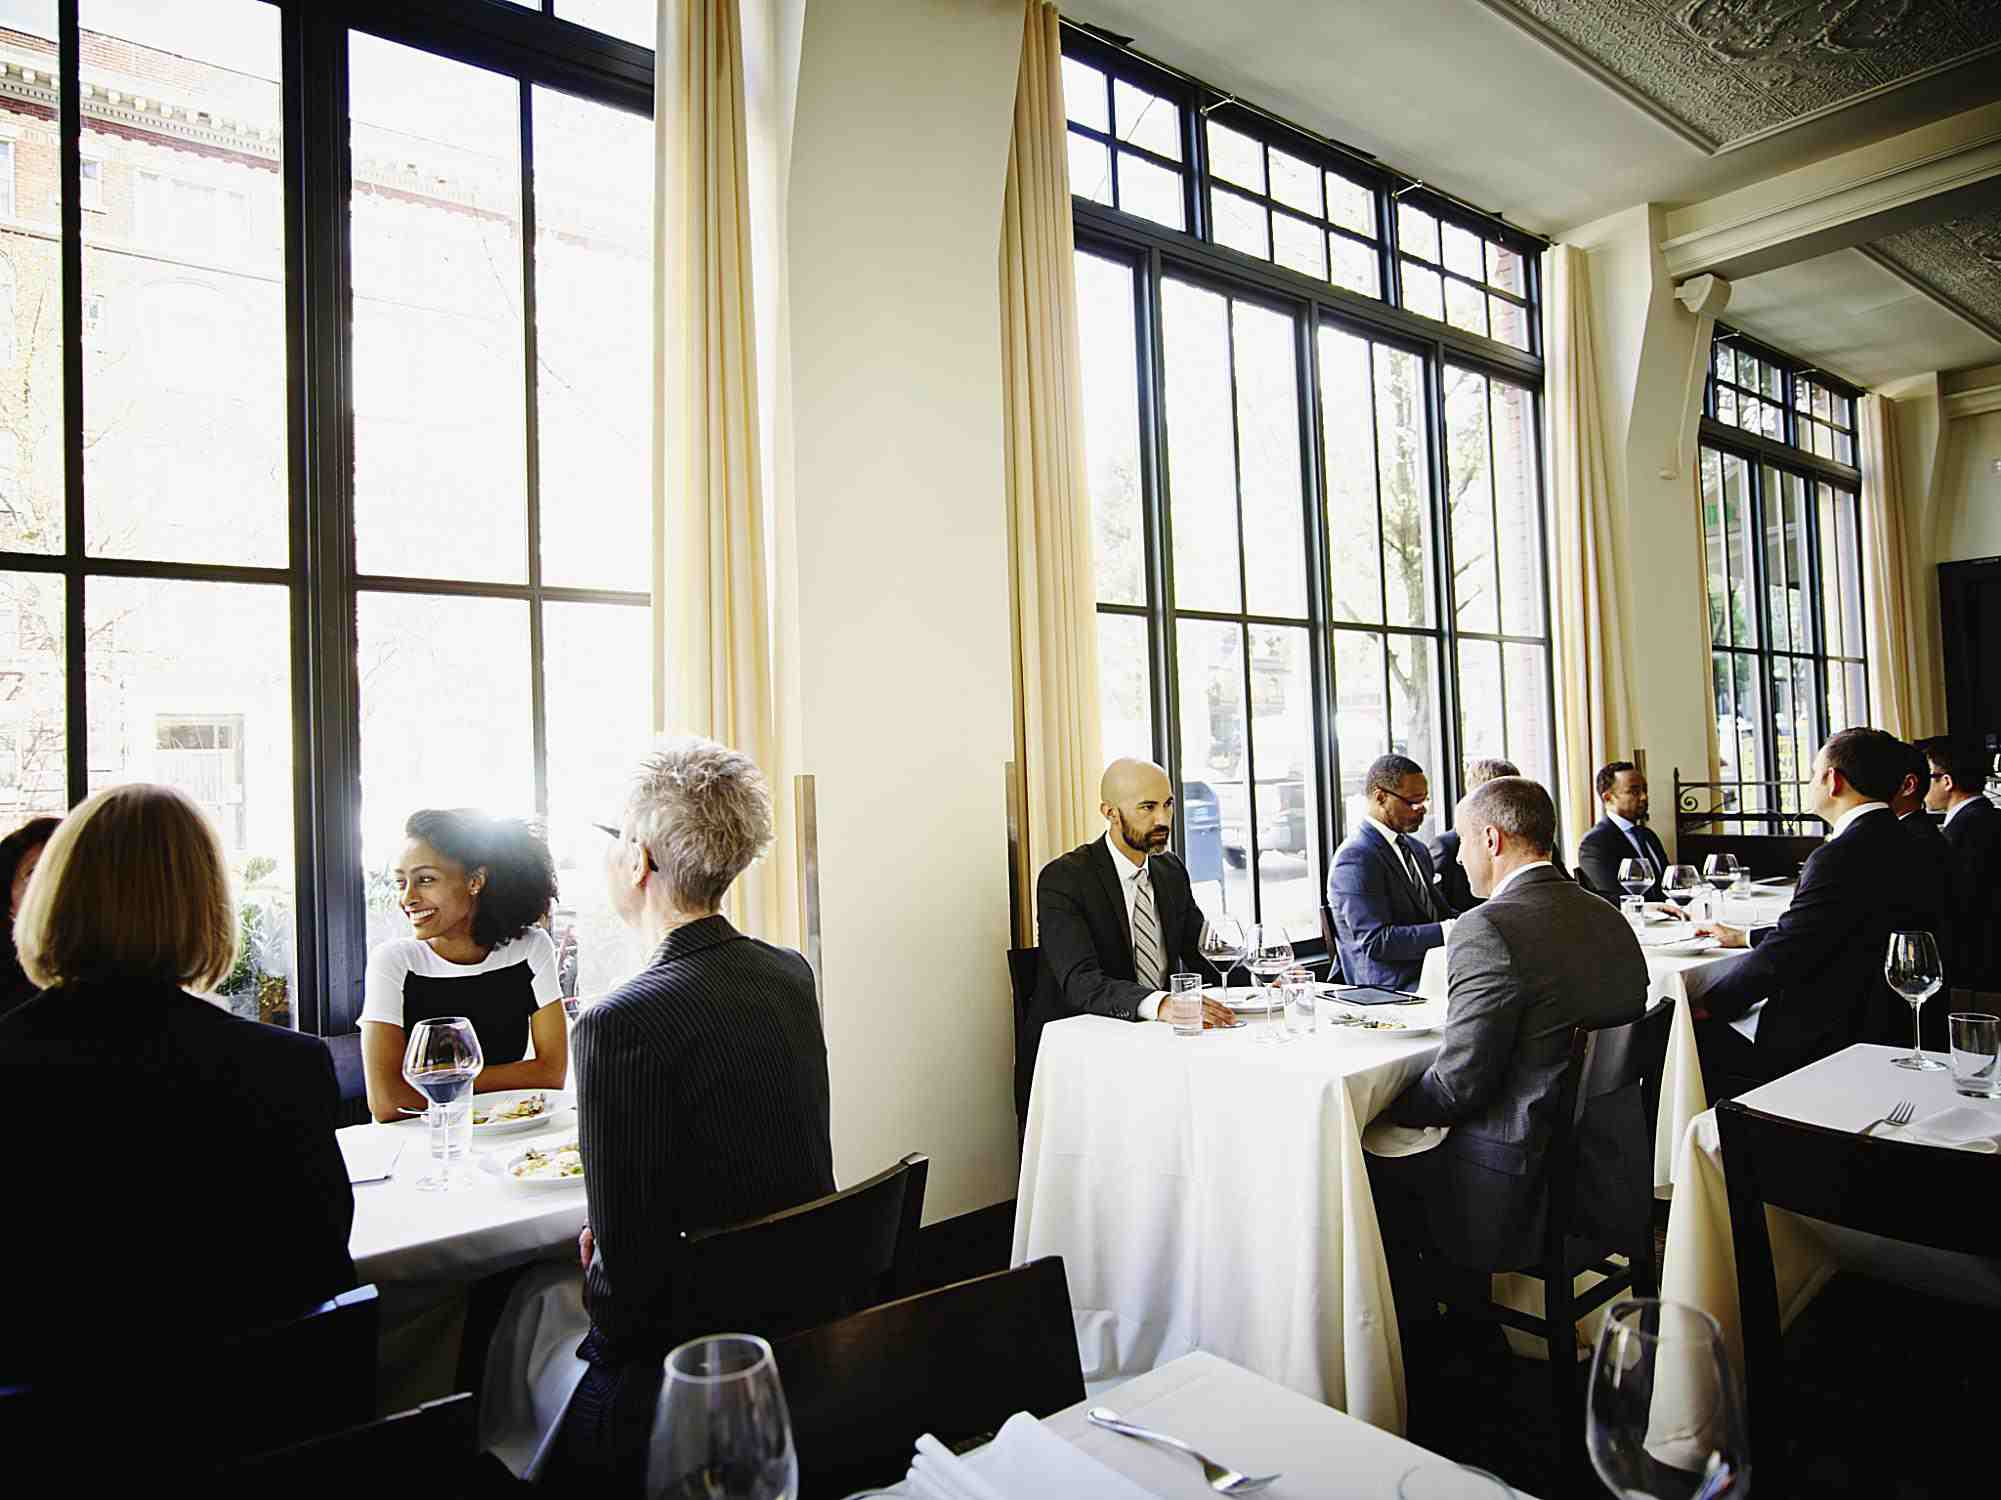 People dining at a fancy restaurant